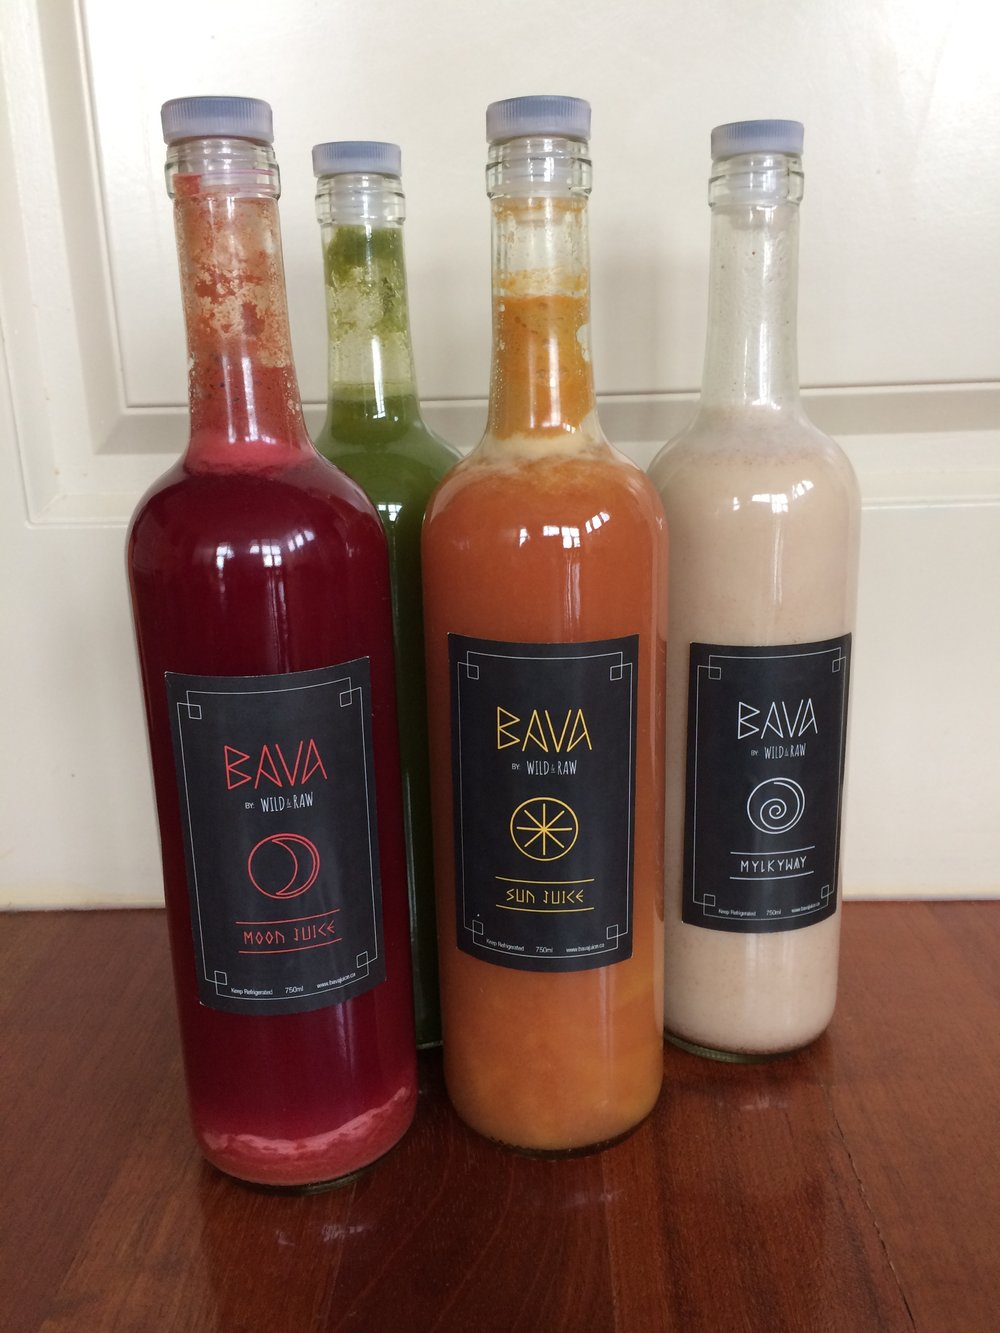 Wild and Raw's Bava Juice